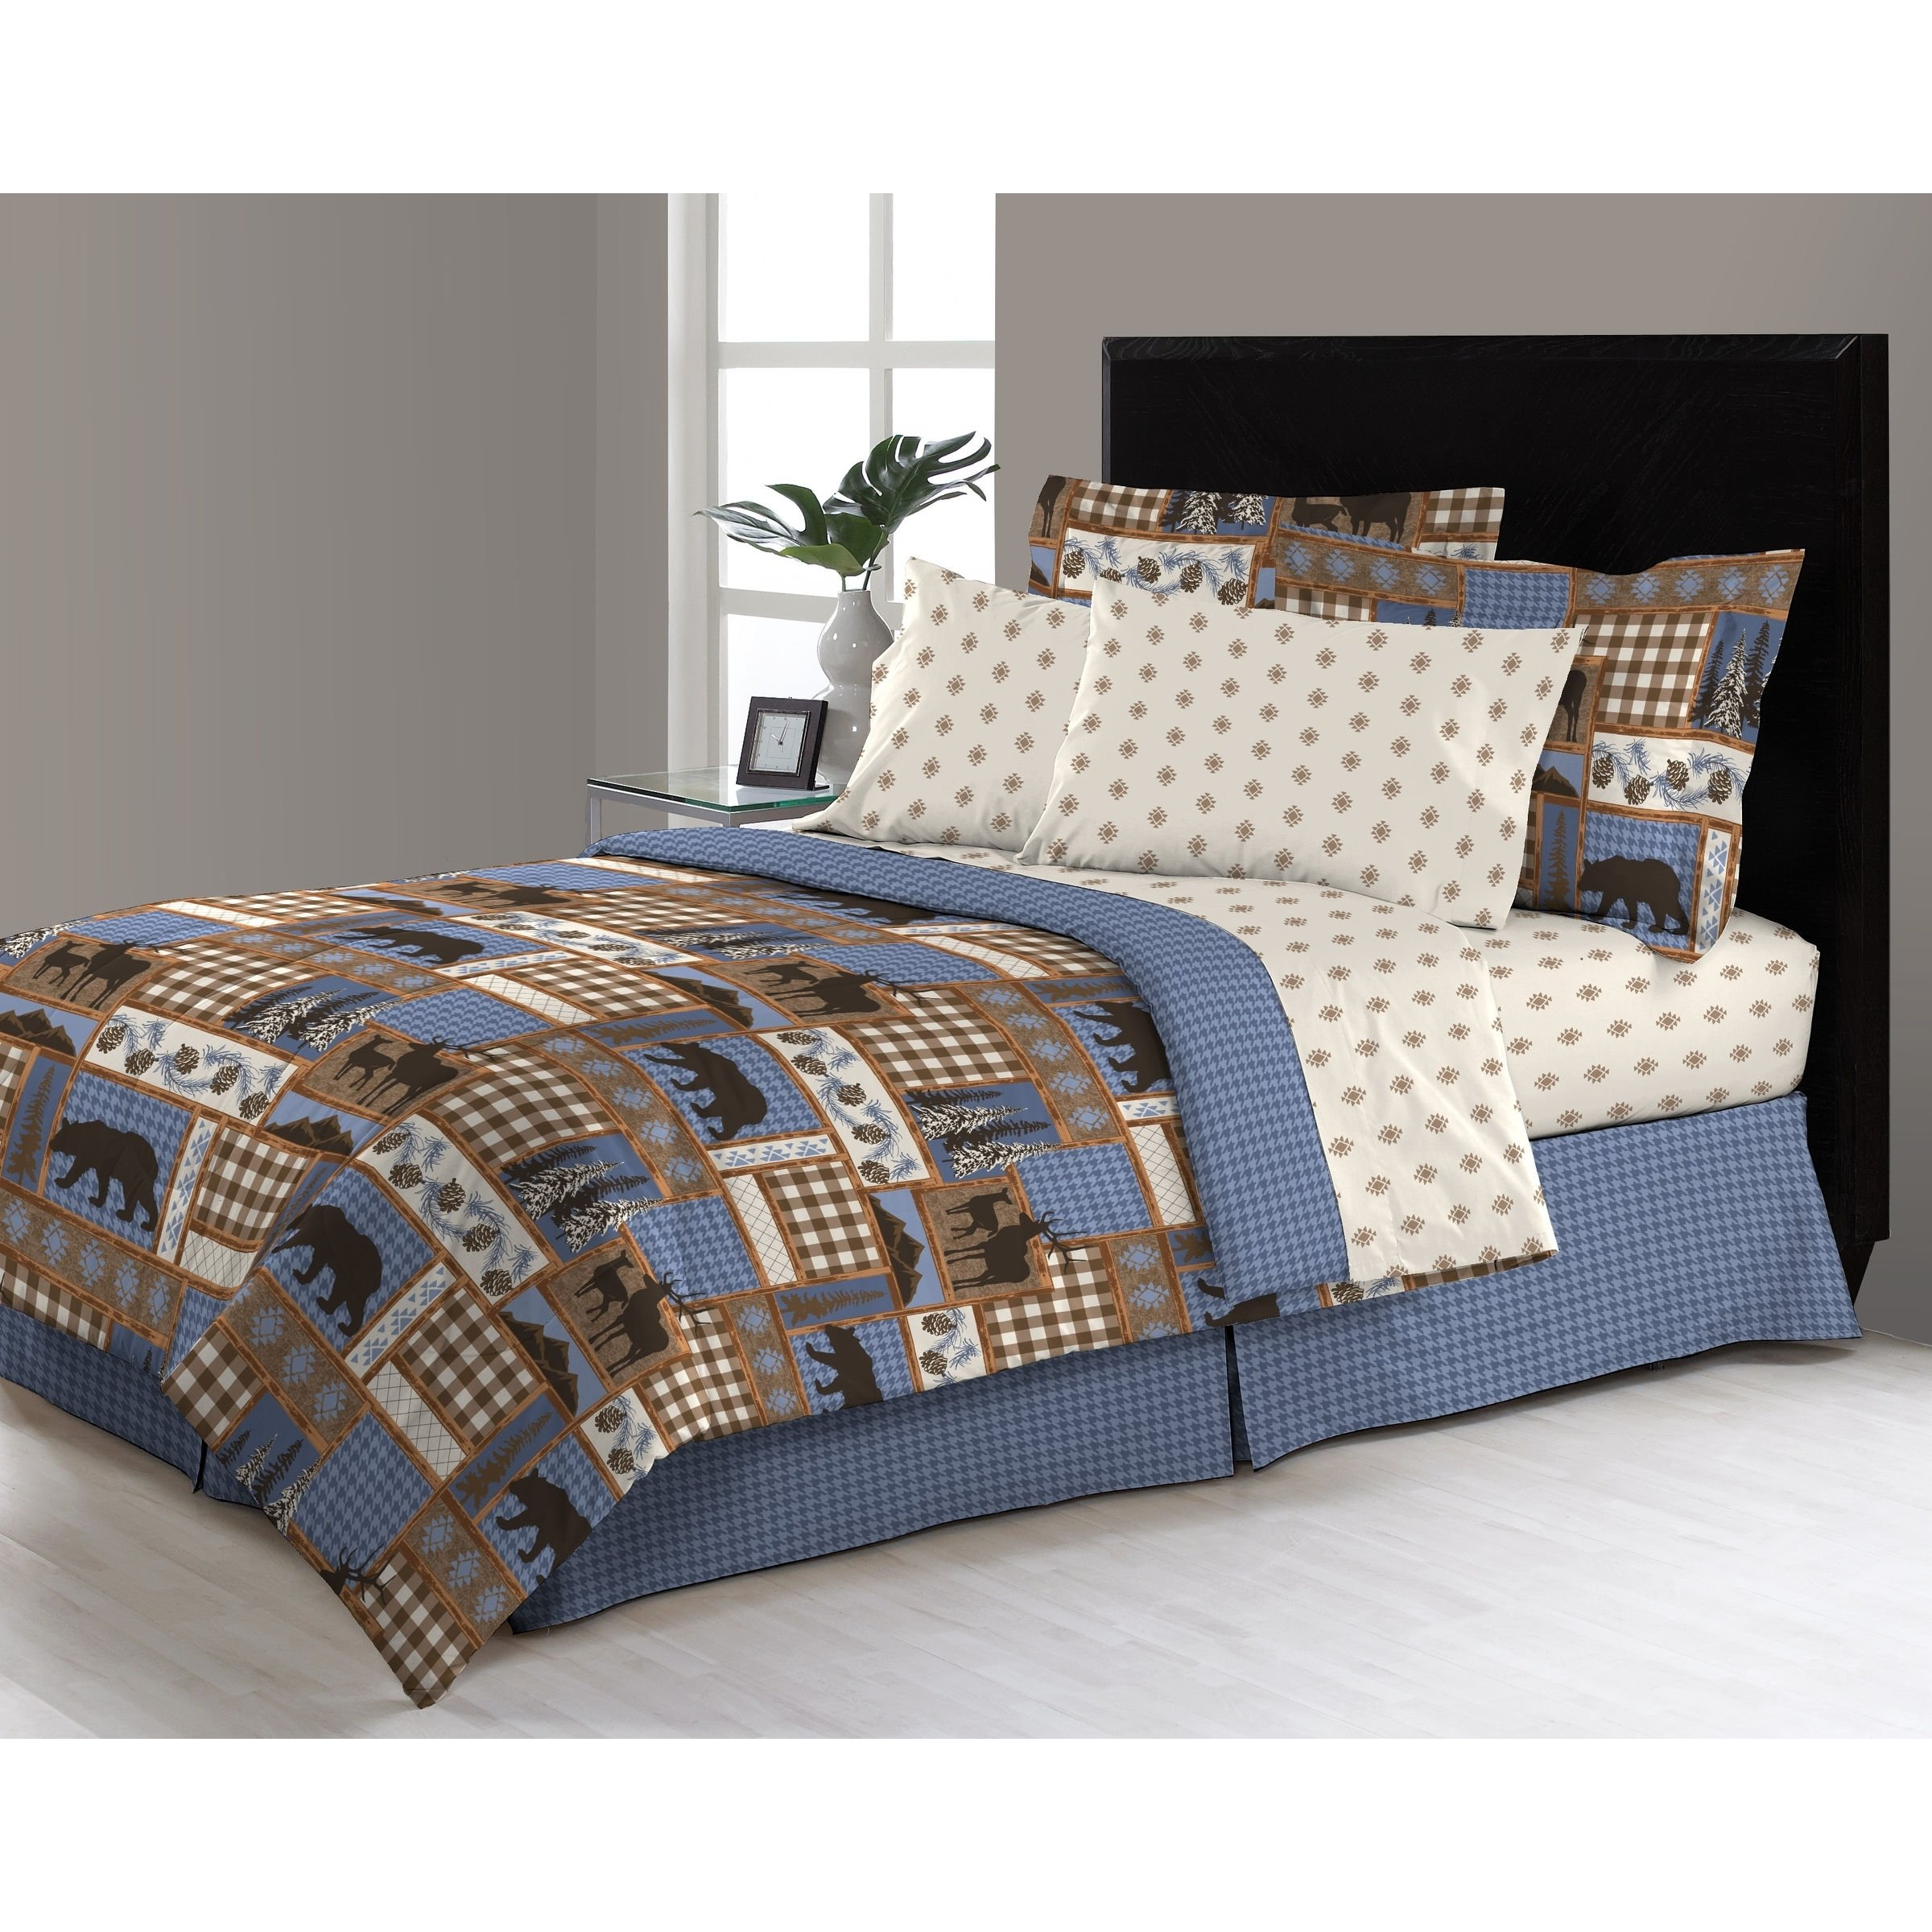 8 Piece Blue Tan Brown Hunting Themed Comforter Queen Set, Deer Bedding Moose Mountains Elk Pine Trees Comb Cabin Themed Lodge Plaid Lumberjack Pattern Wildlife Animals Woods Hunt Game, Microfiber